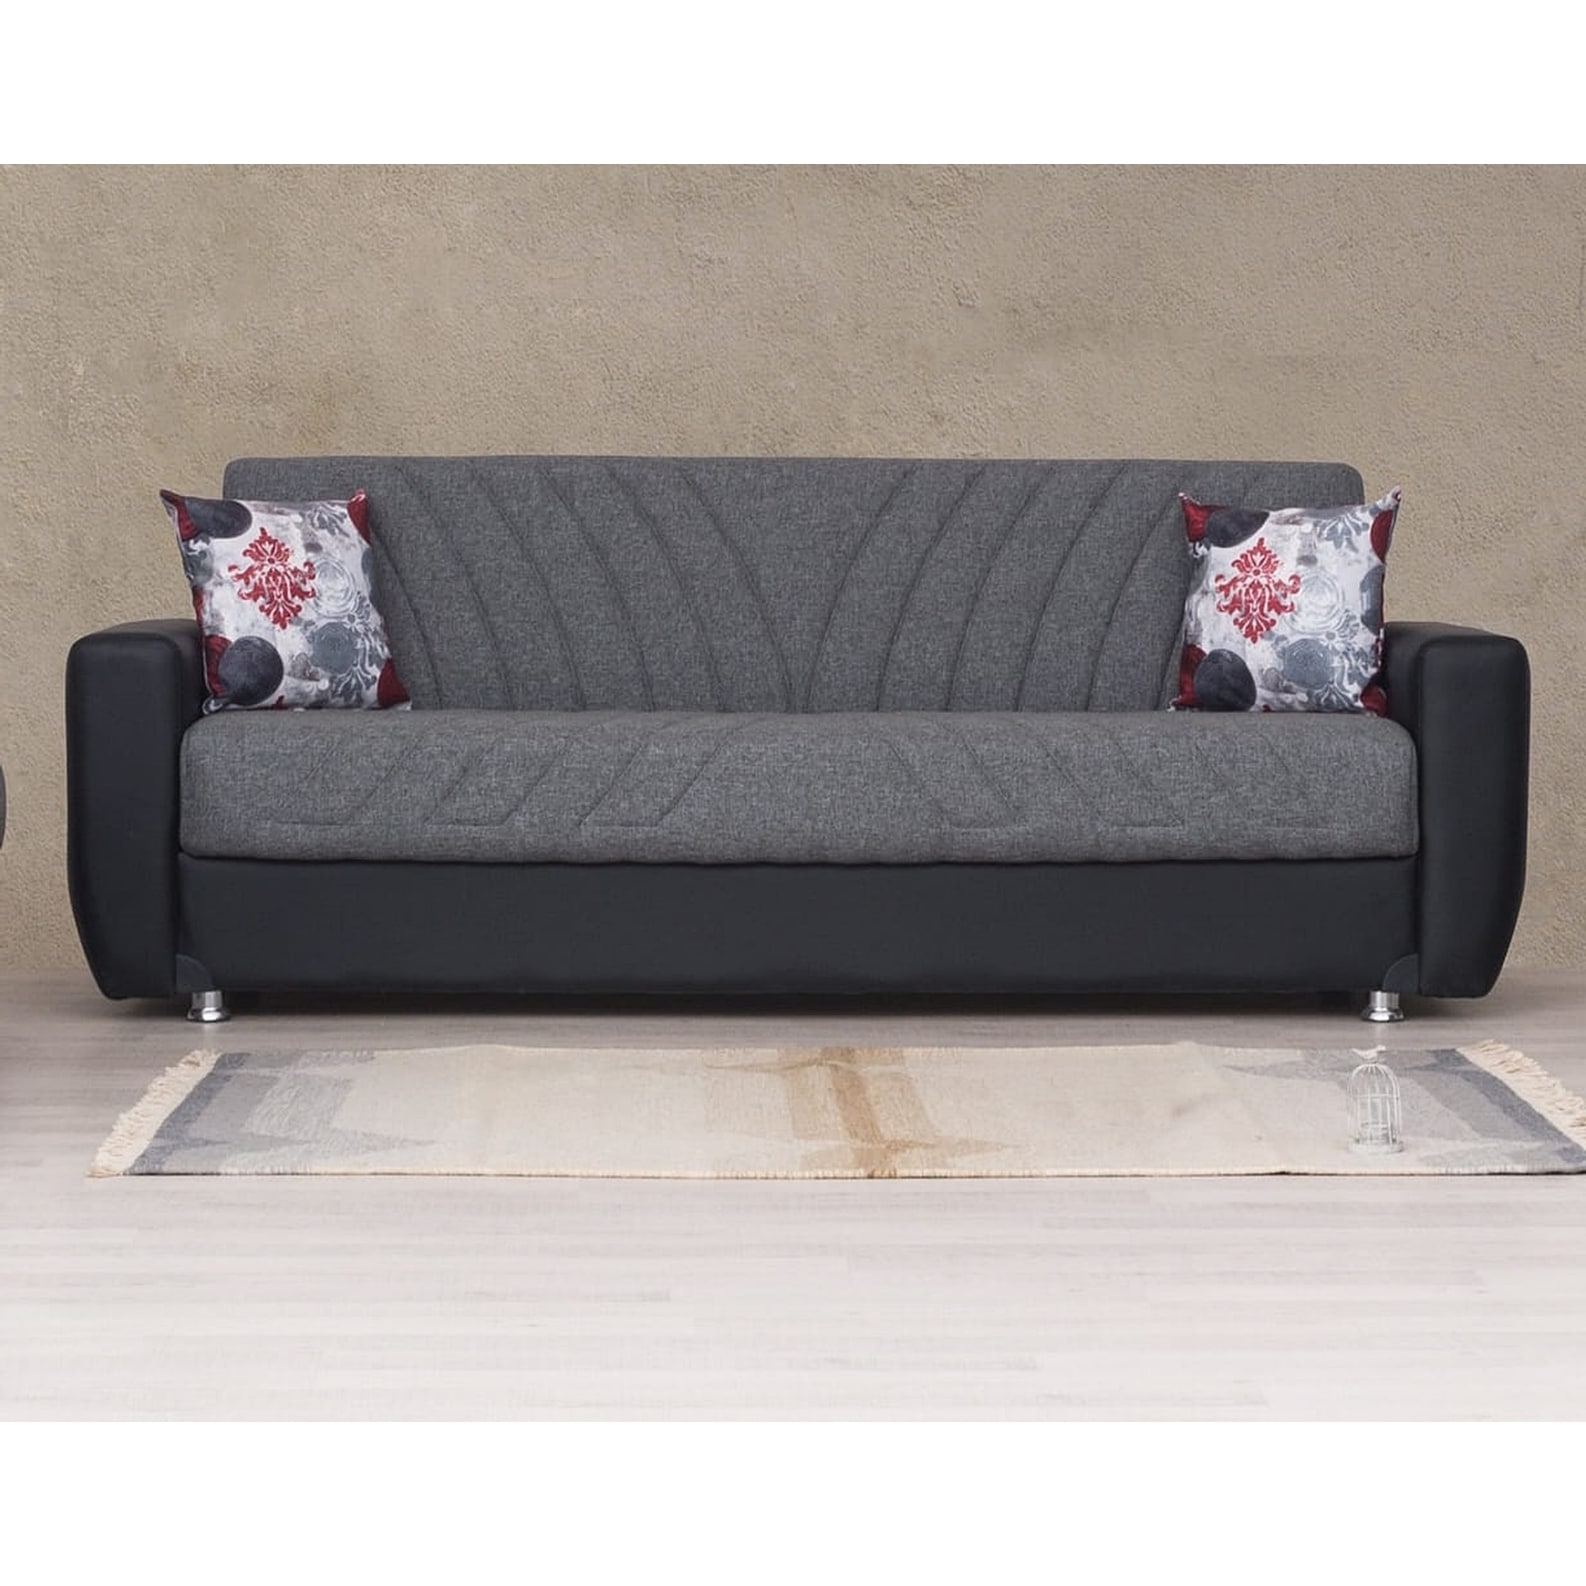 Shop Baltimore Grey And Black Convertible Sleeper Sofa With Storage On Sale Overstock 32086650